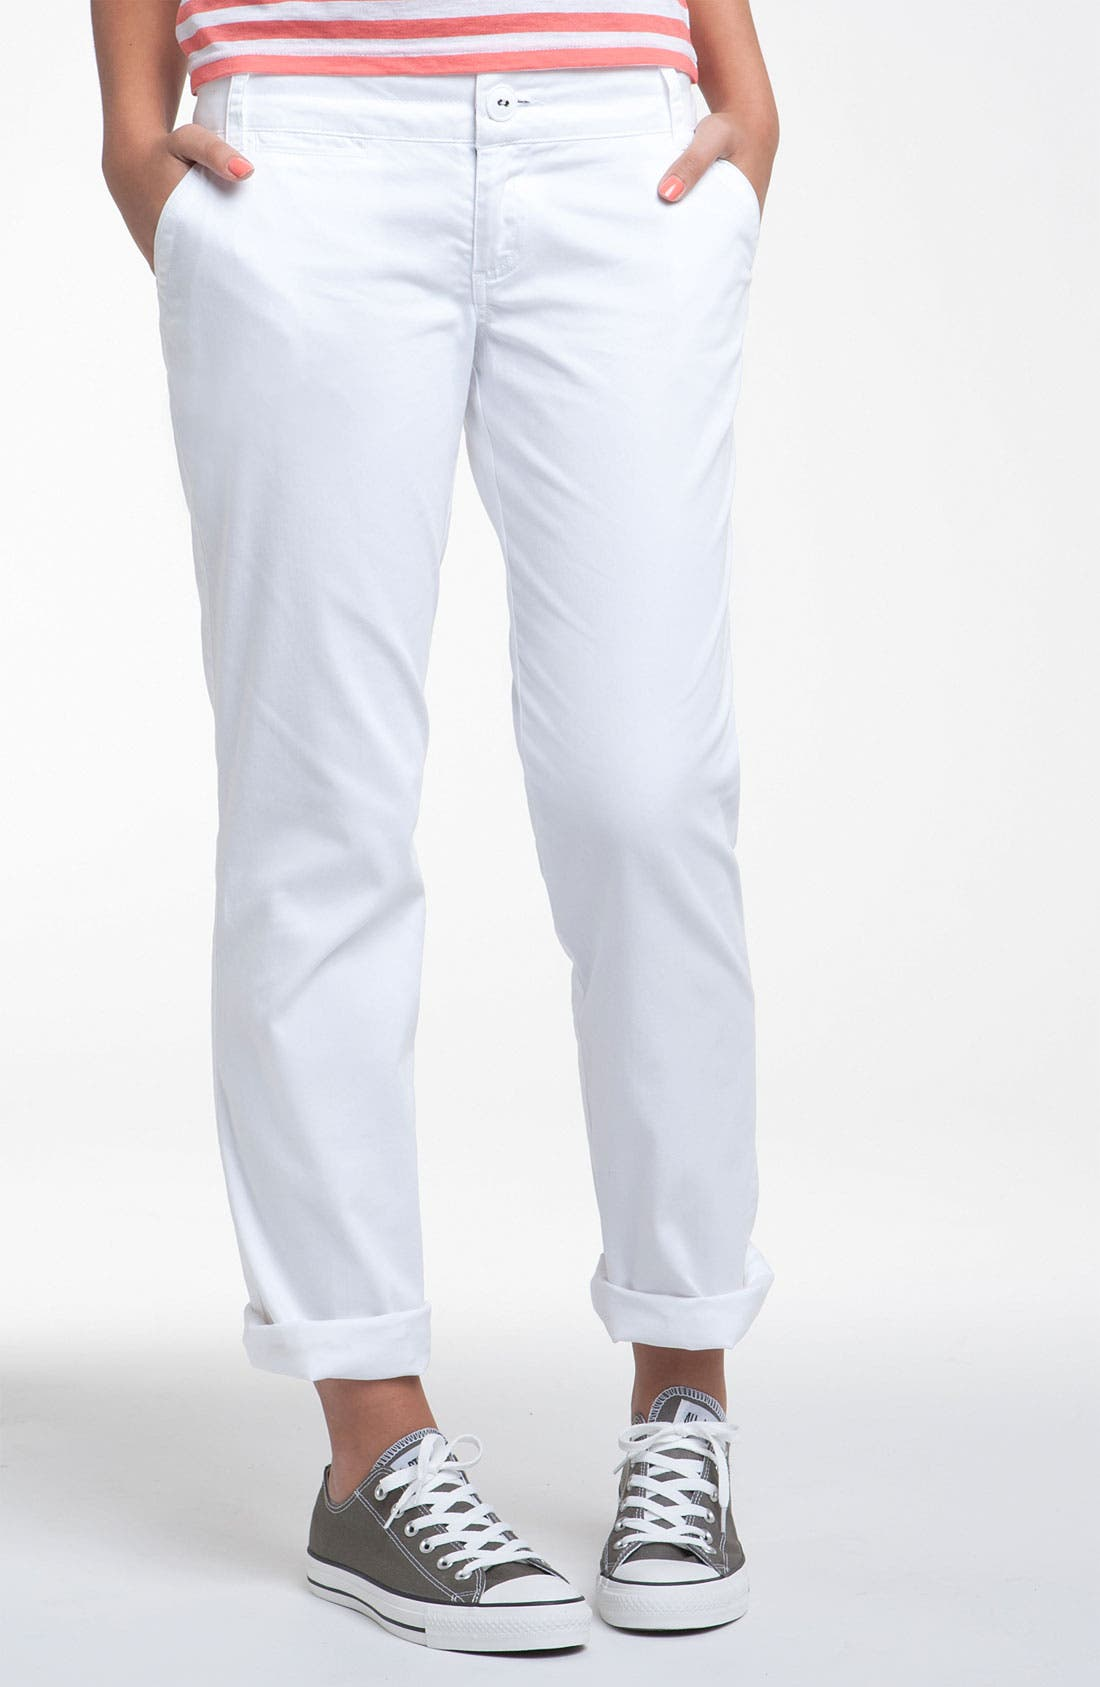 Alternate Image 1 Selected - Jolt Roll Cuff Classic Chinos (Juniors)